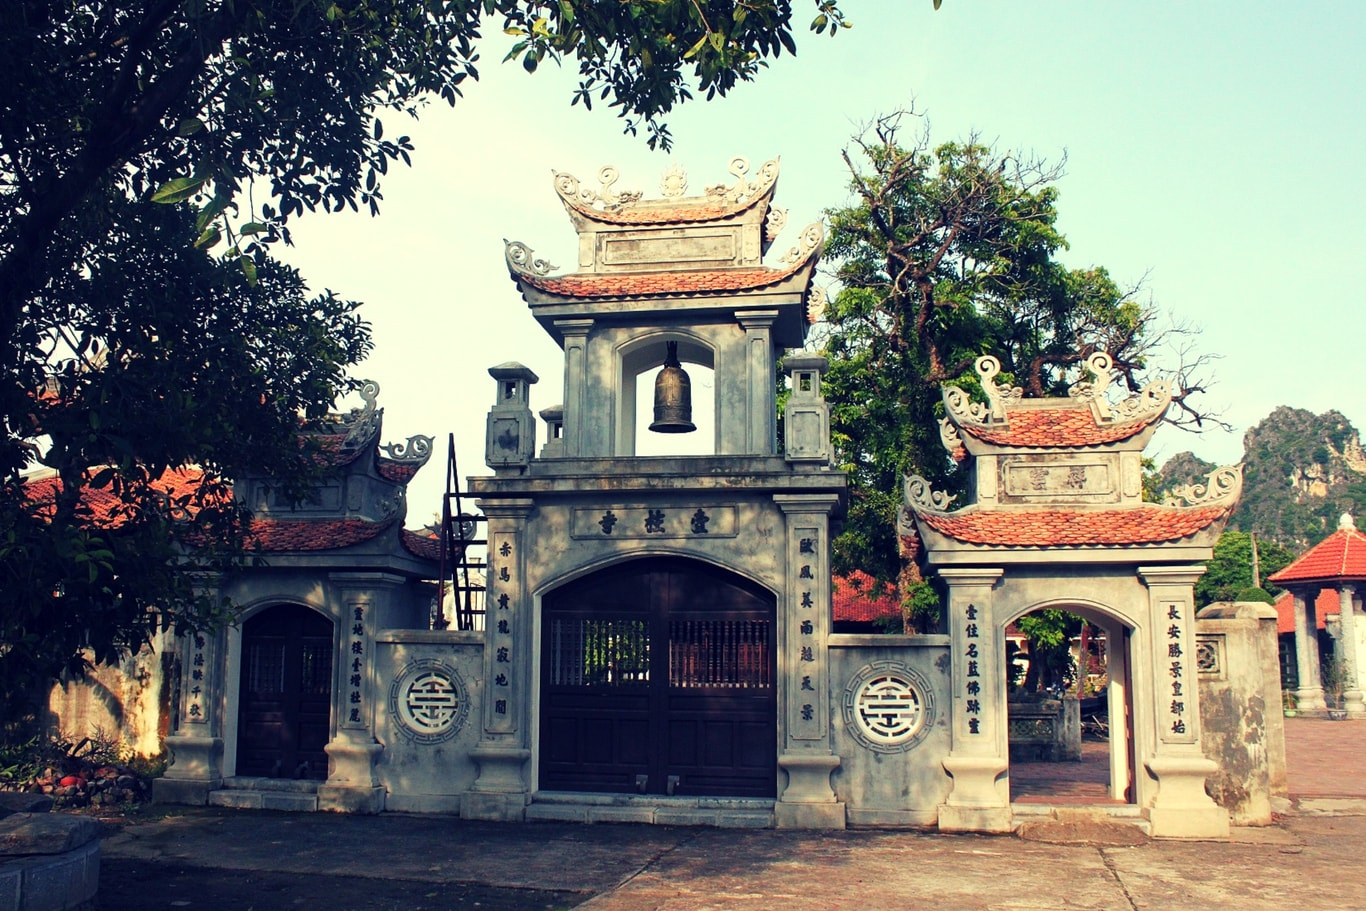 3-entrance-gates-of-Nhat-Tru-pagoda